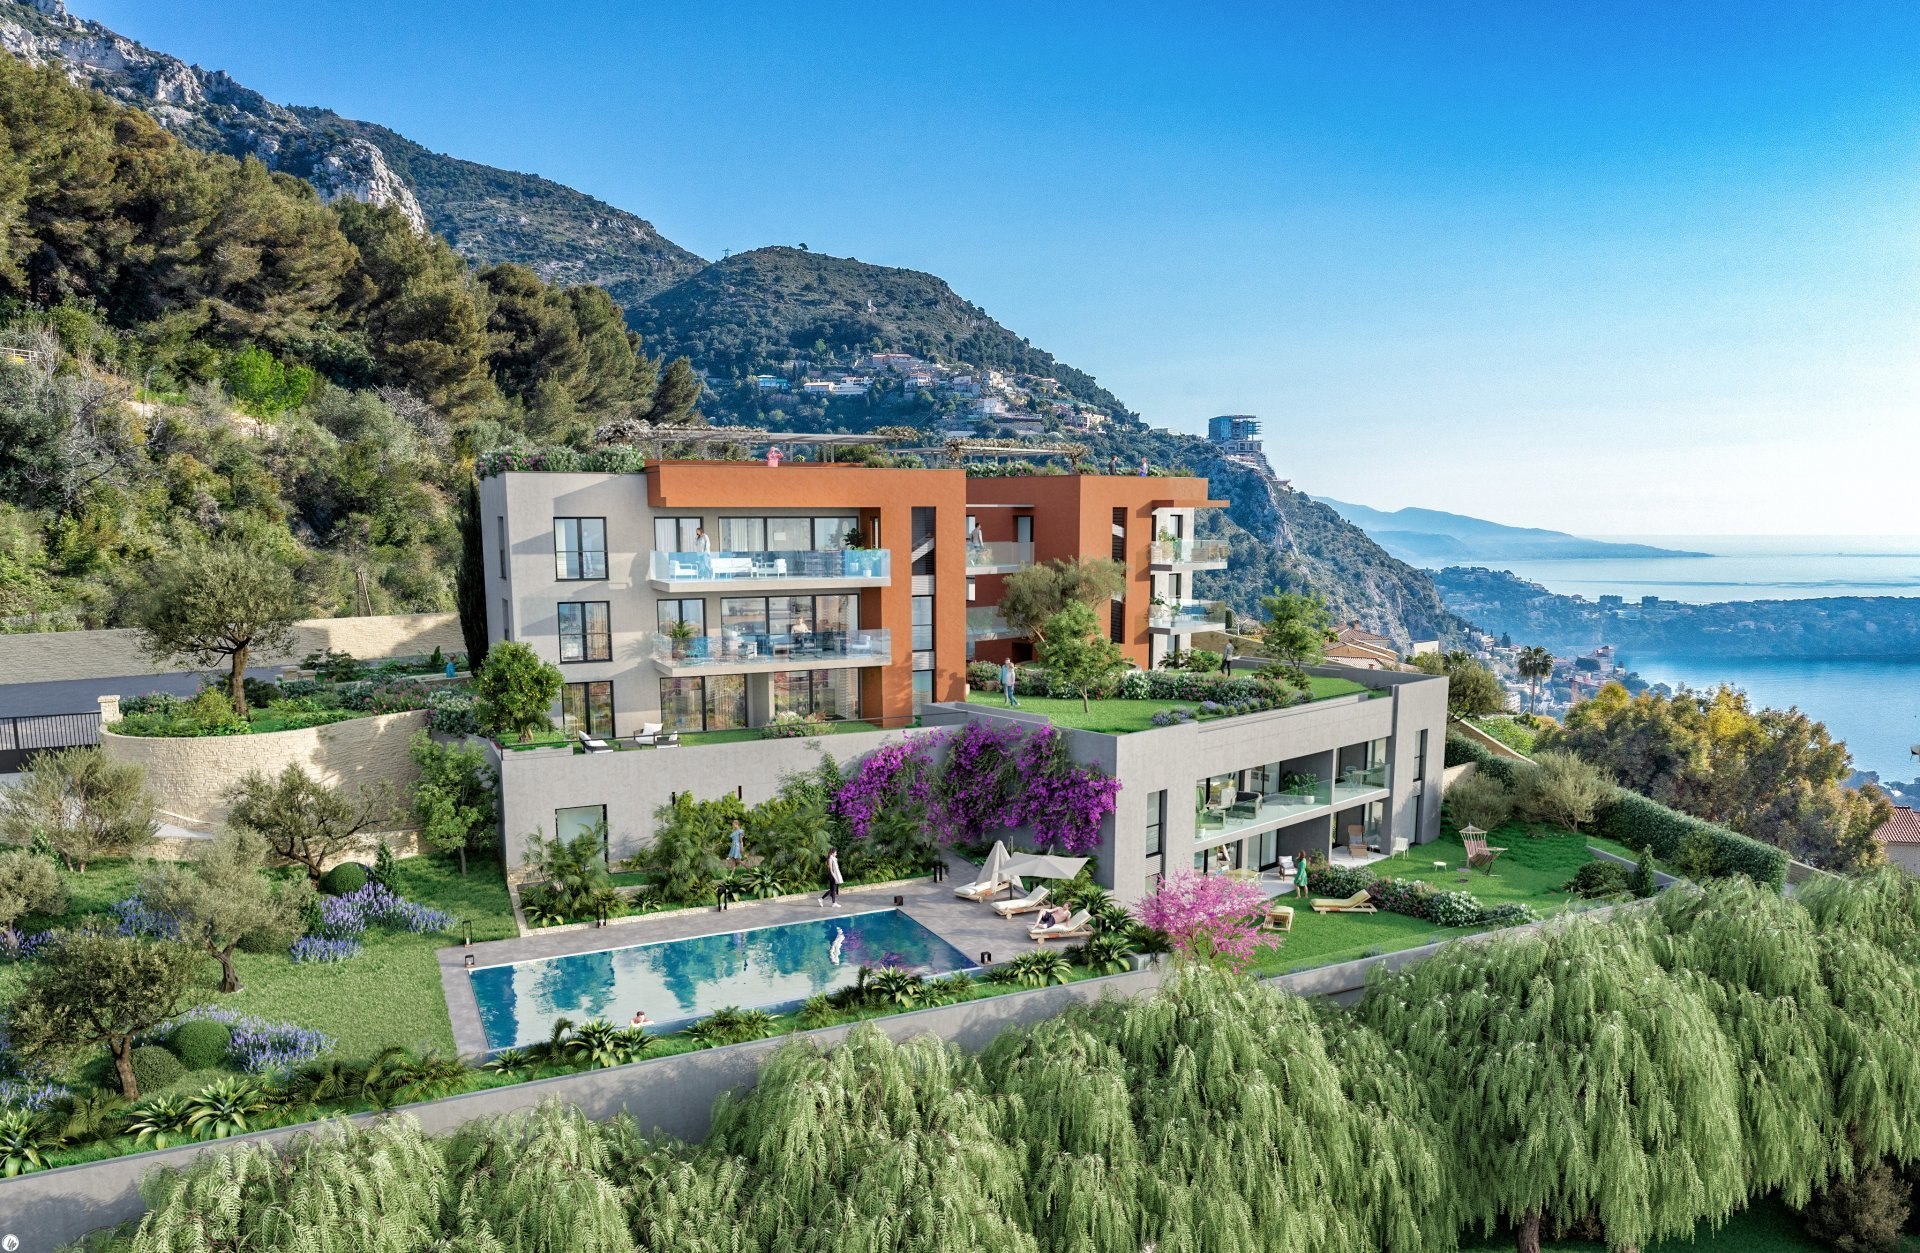 BEAUSOLEIL - French Riviera - 3 bed apartment with panoramic sea view - large terrace - swimming pool